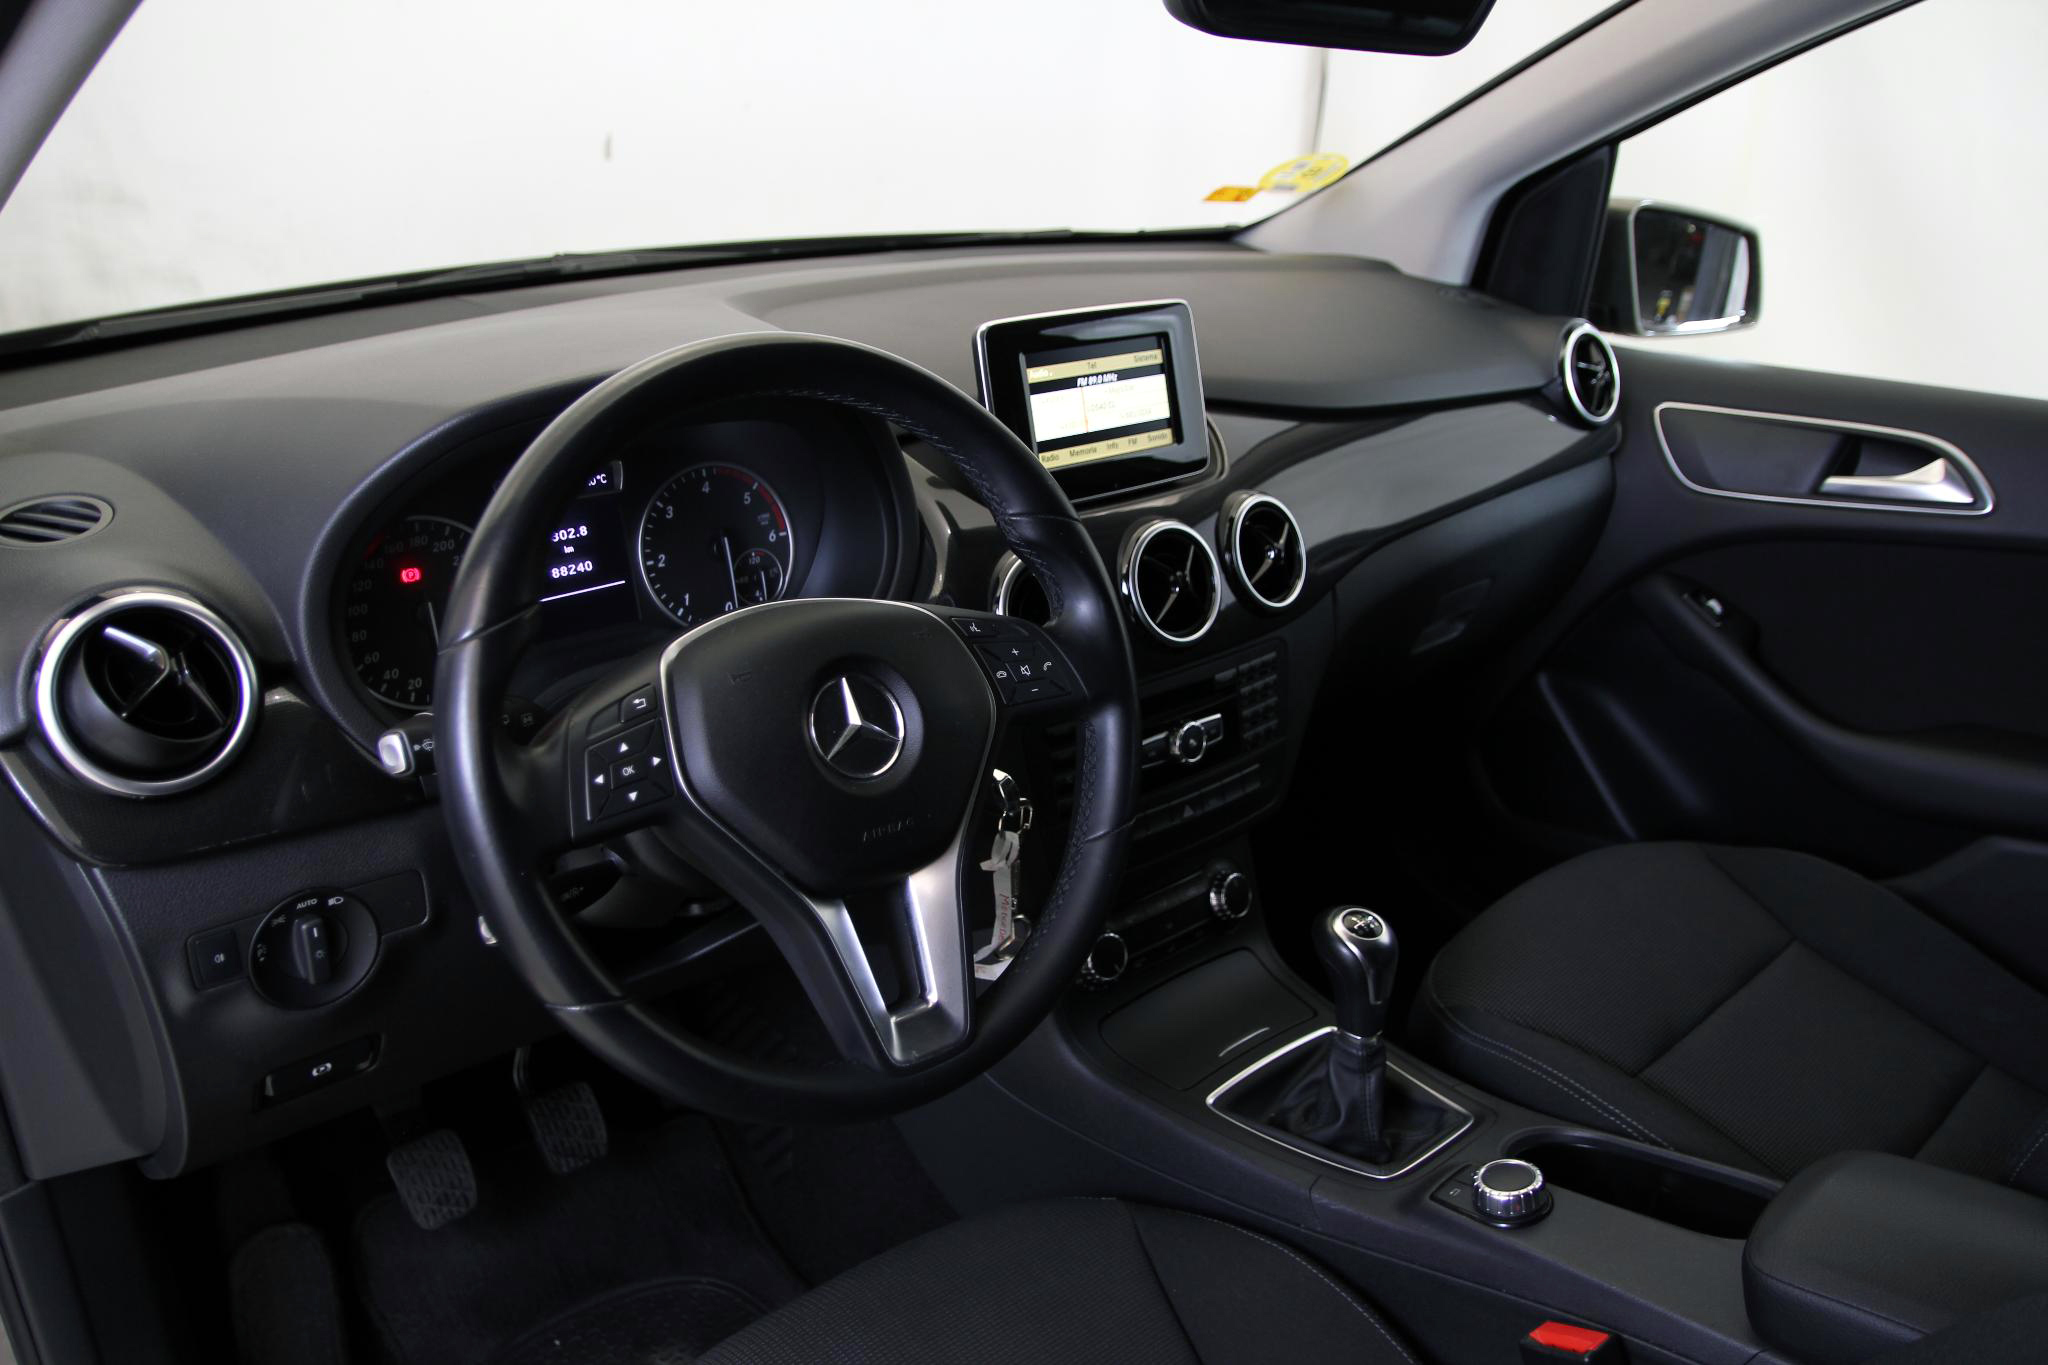 Mercedes-Benz Clase B CLASE B 180 CDI BLUE EFFICIENCY 5P imagen 19